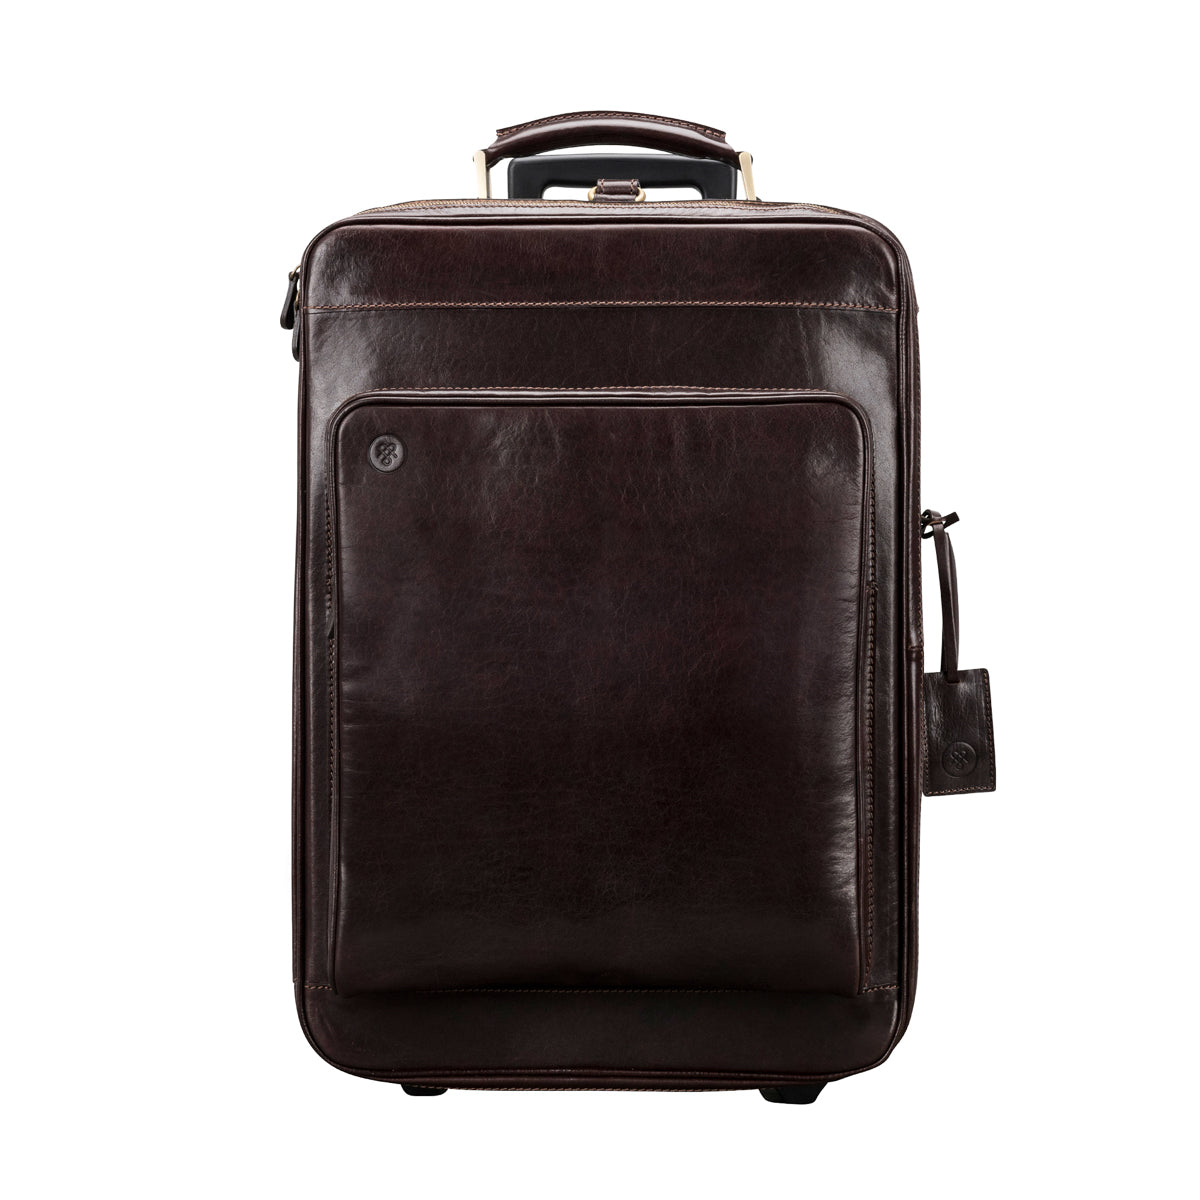 Image 1 of the 'Piazzale' Dark Chocolate Veg-Tanned Leather Wheeled Suitcase